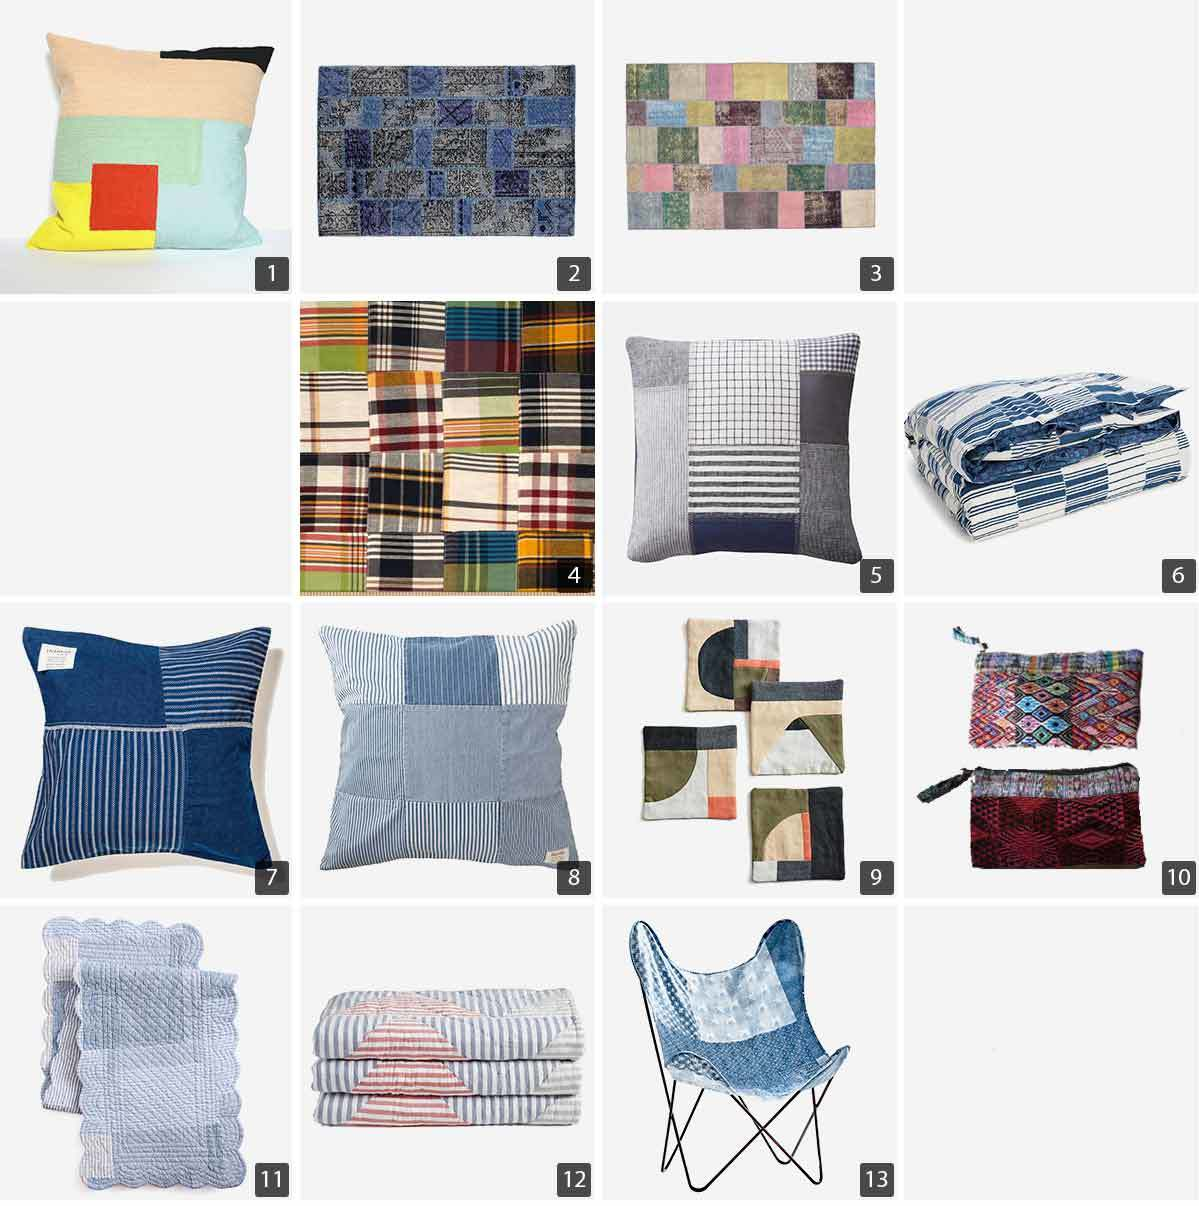 Collage of home decor including decorative pillow covers, fabric, a quilt, duvet cover, and chair. photo